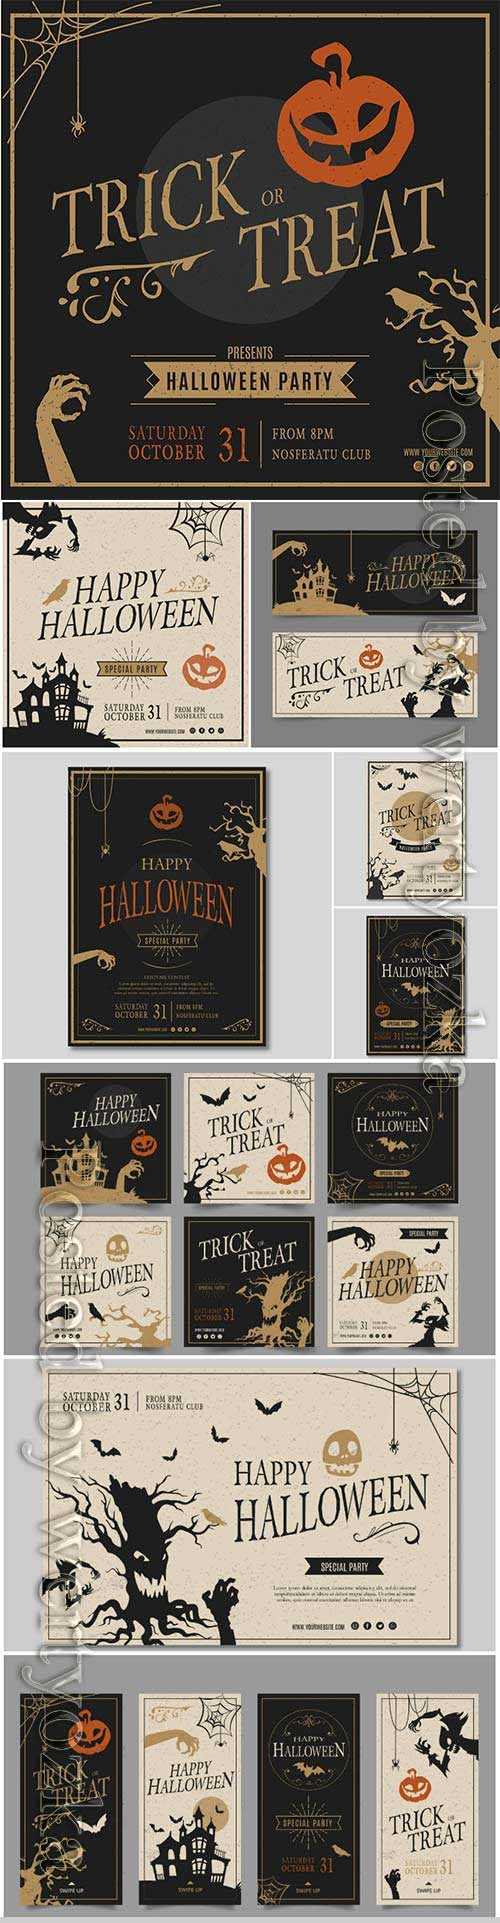 Halloween party squared flyer template